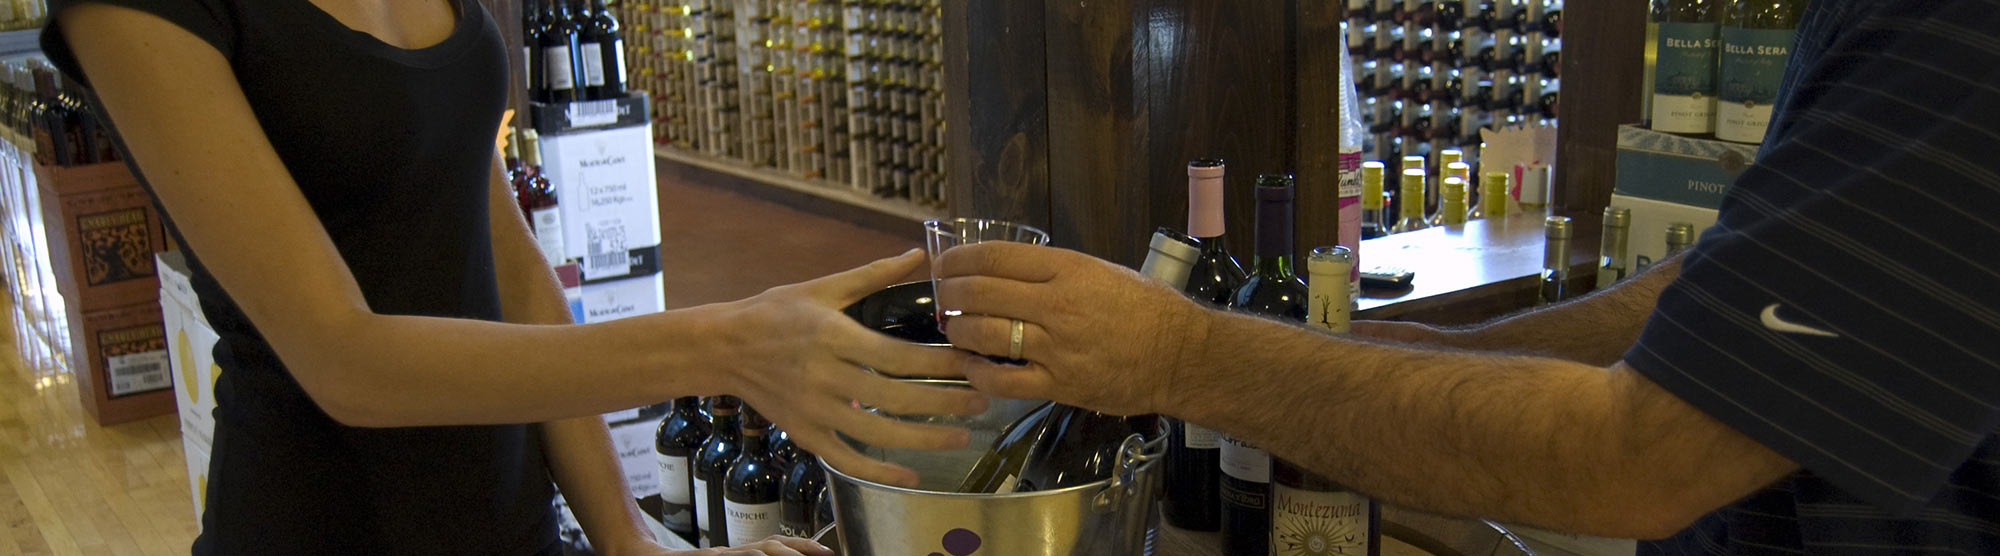 Wine Tastings at Monty's Discount Wine & Liquor